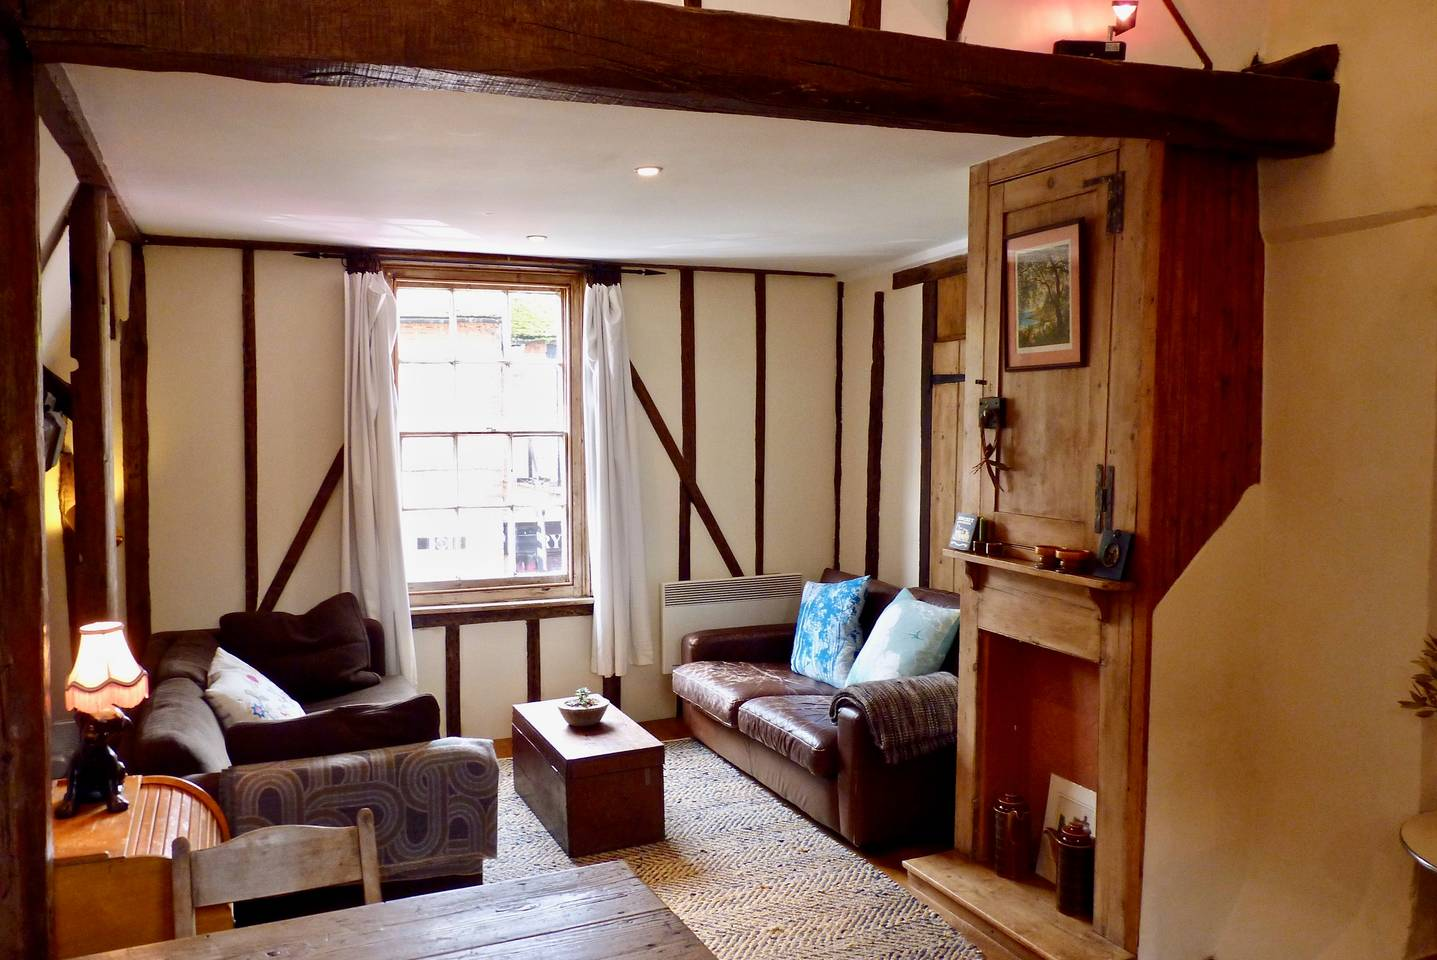 Apartment Four Doors - Apartment in the Heart of Rye photo 28311554